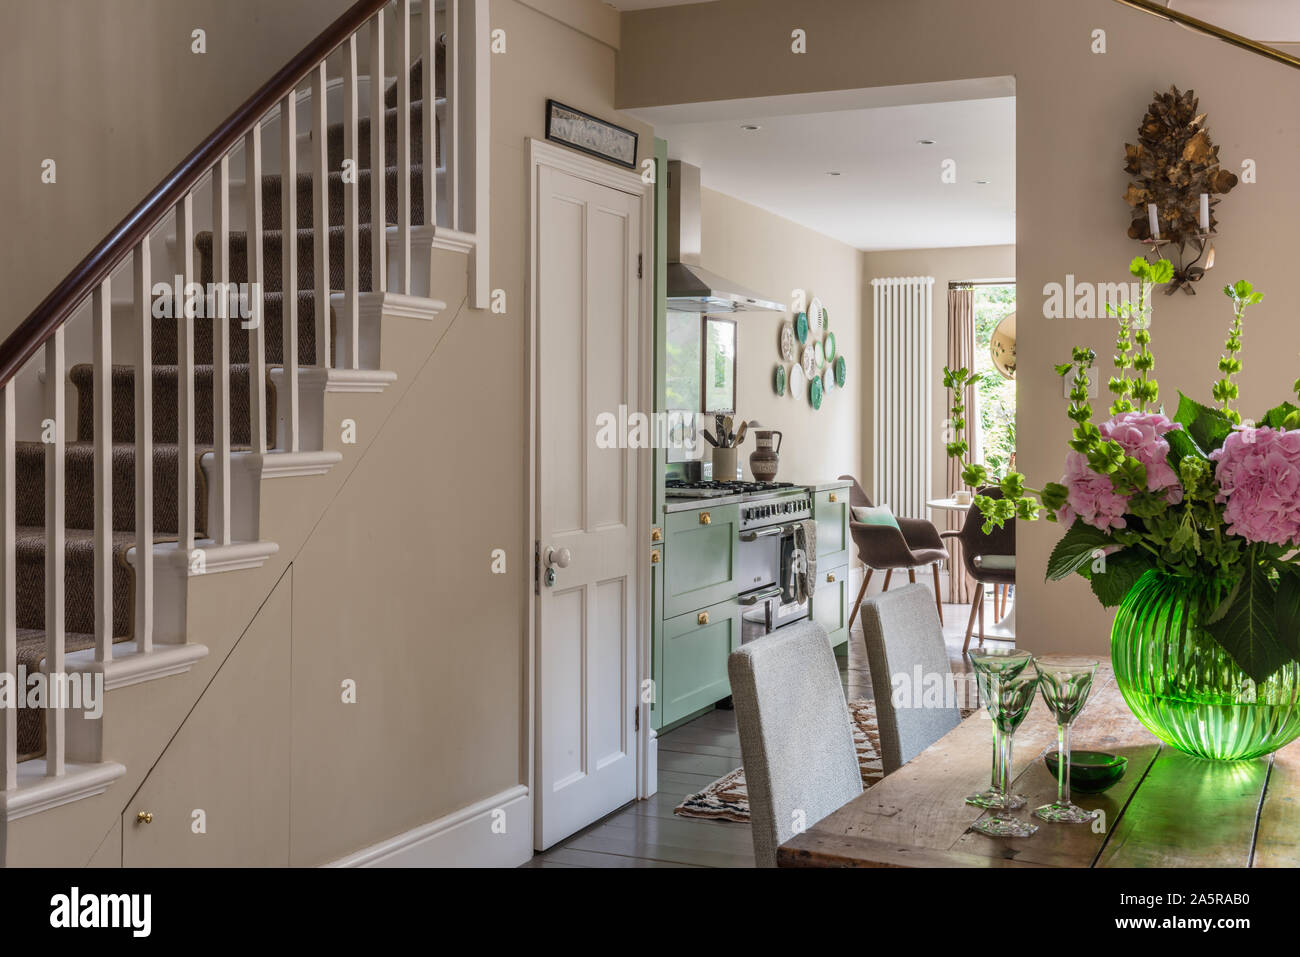 Open Plan Kitchen Dining Room In Victorian Terrace Renovation Stock Photo Alamy